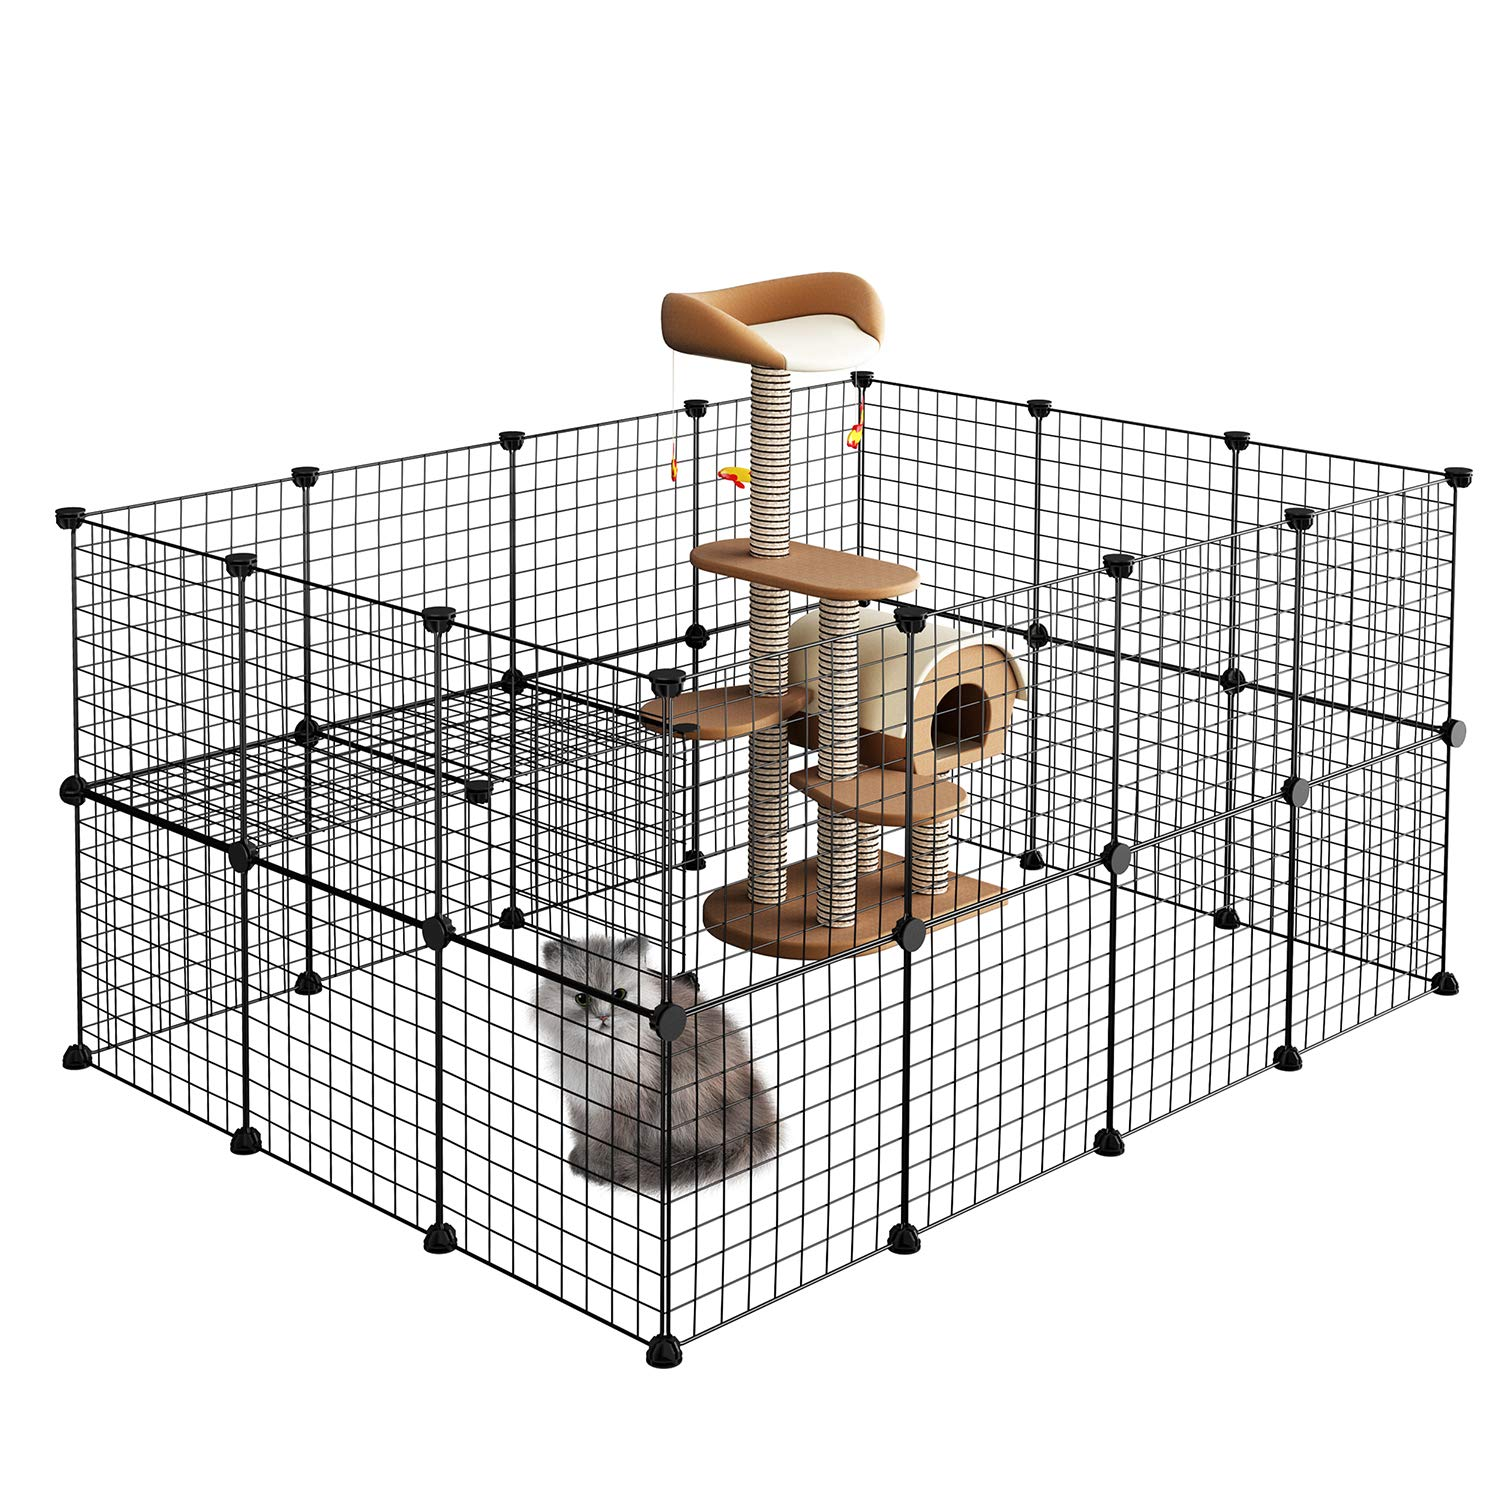 LANGRIA Pet Playpen, DIY Small Animal Cage for Guinea Pigs, Puppy,Rabbit Pet Products Portable Metal Wire Yard Fence Black